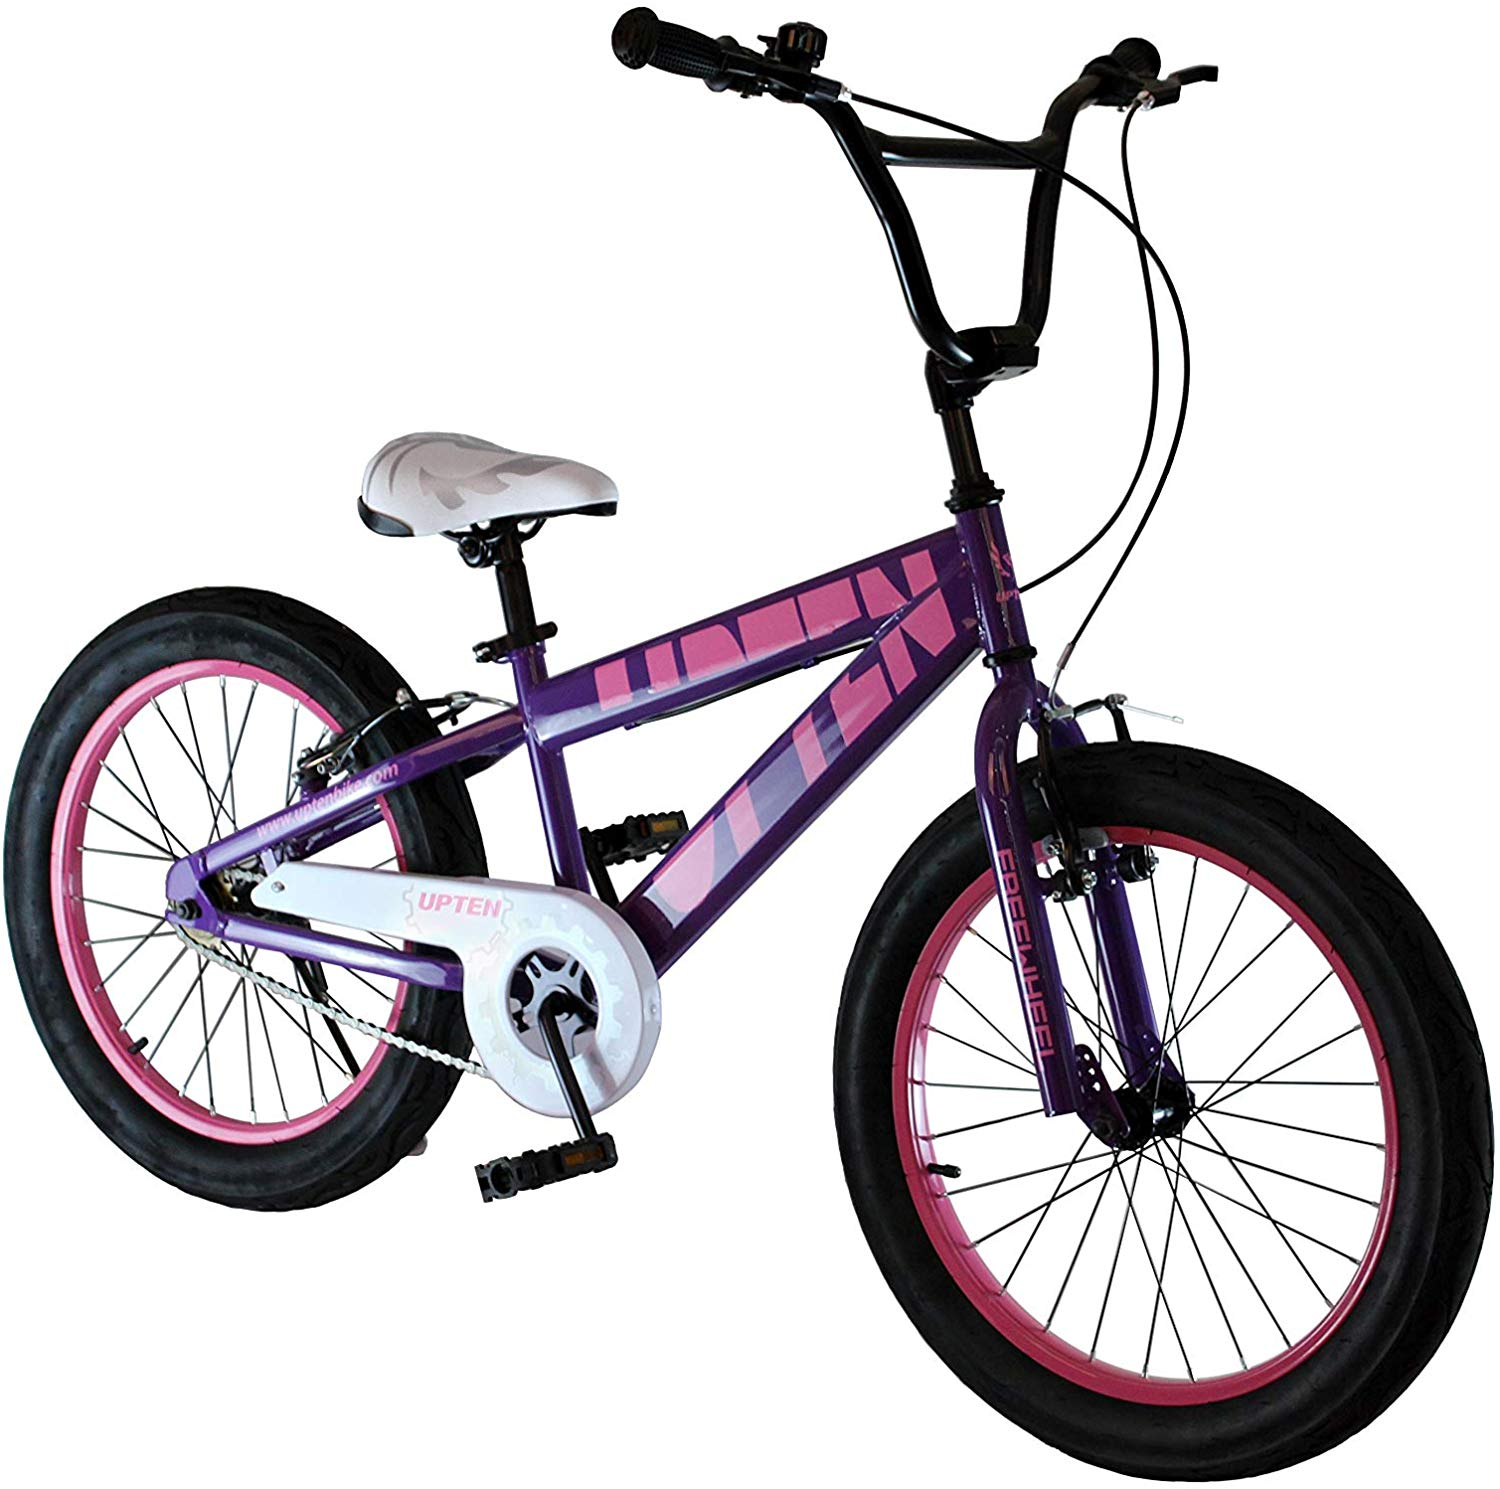 UPTEN Freewheel Bike 20-Inch Purple